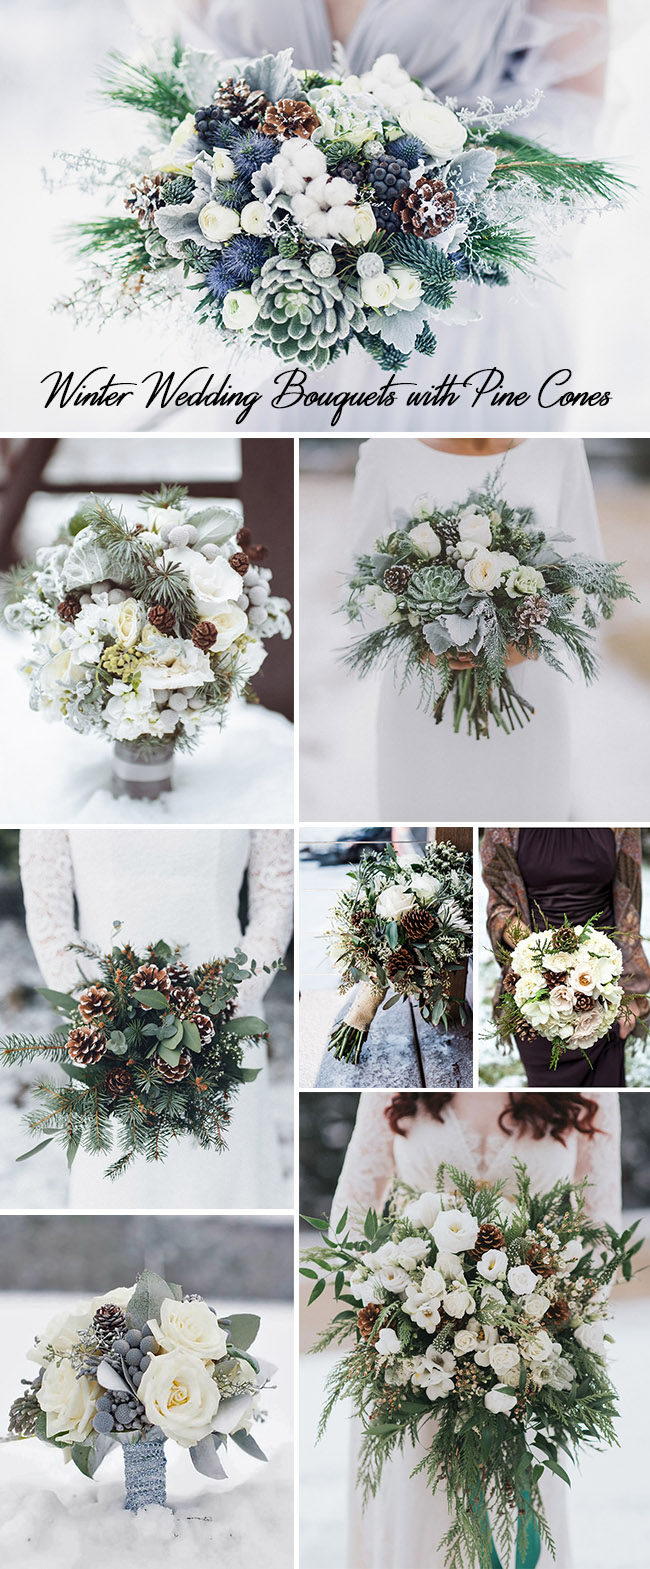 winter wedding bouquets ideas with pine cones